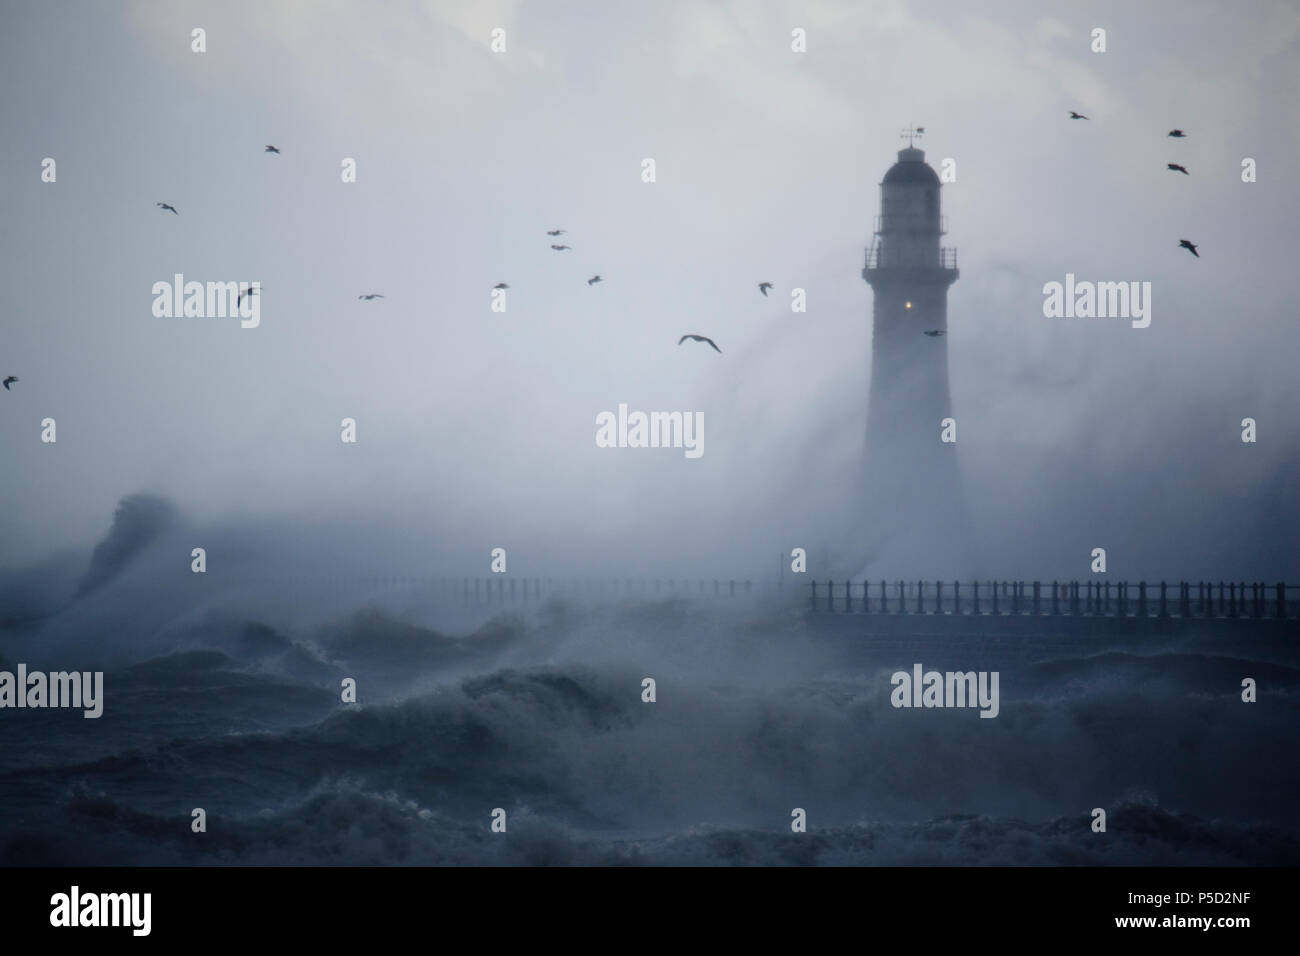 Violent winds and waves hit Roker Pier, Sunderland during an easterly gale that combined with high tides - Stock Image